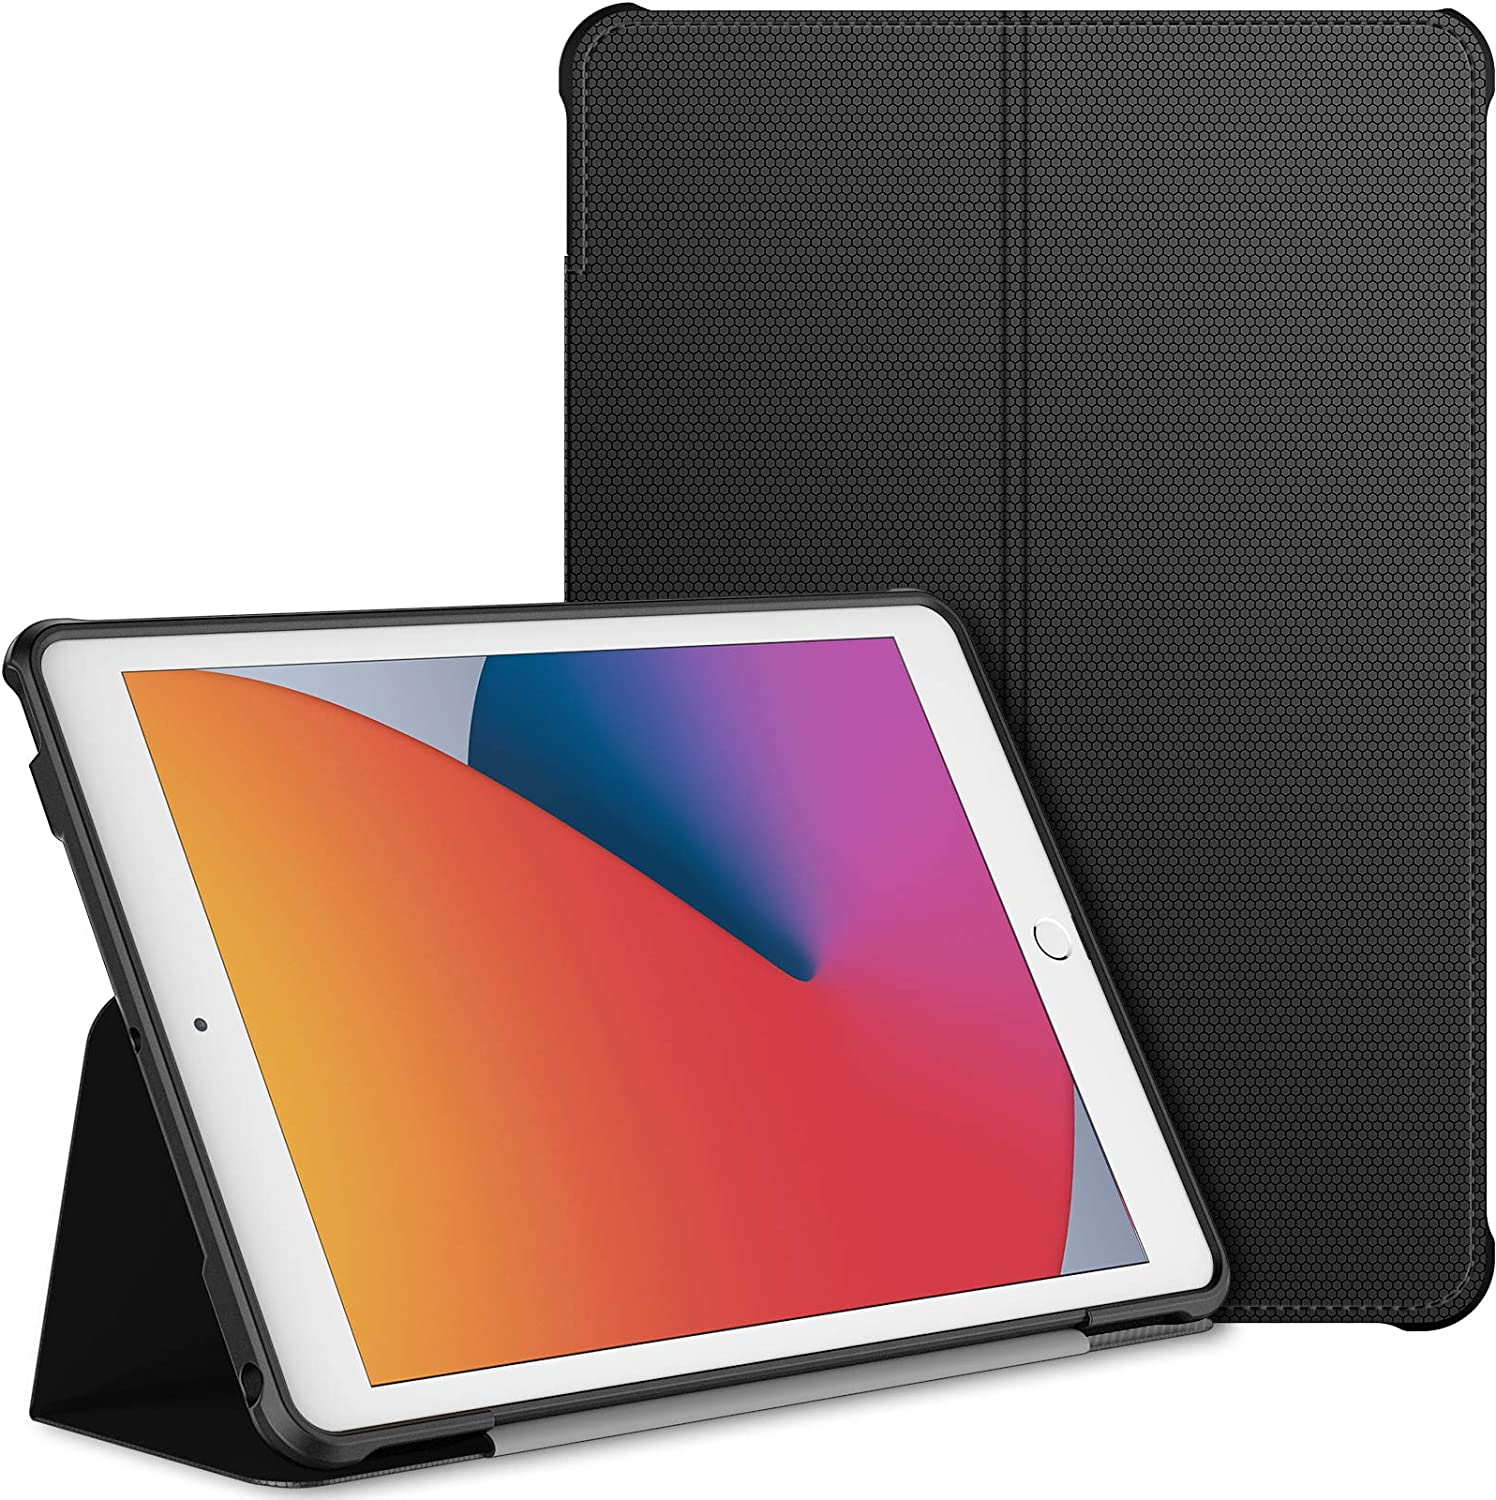 JETech Case for iPad 8/7 (10.2-Inch, 2020/2019 Model, 8th / 7th Generation), Double-fold Stand with Shockproof TPU Back Cover, Auto Wake/Sleep, Black